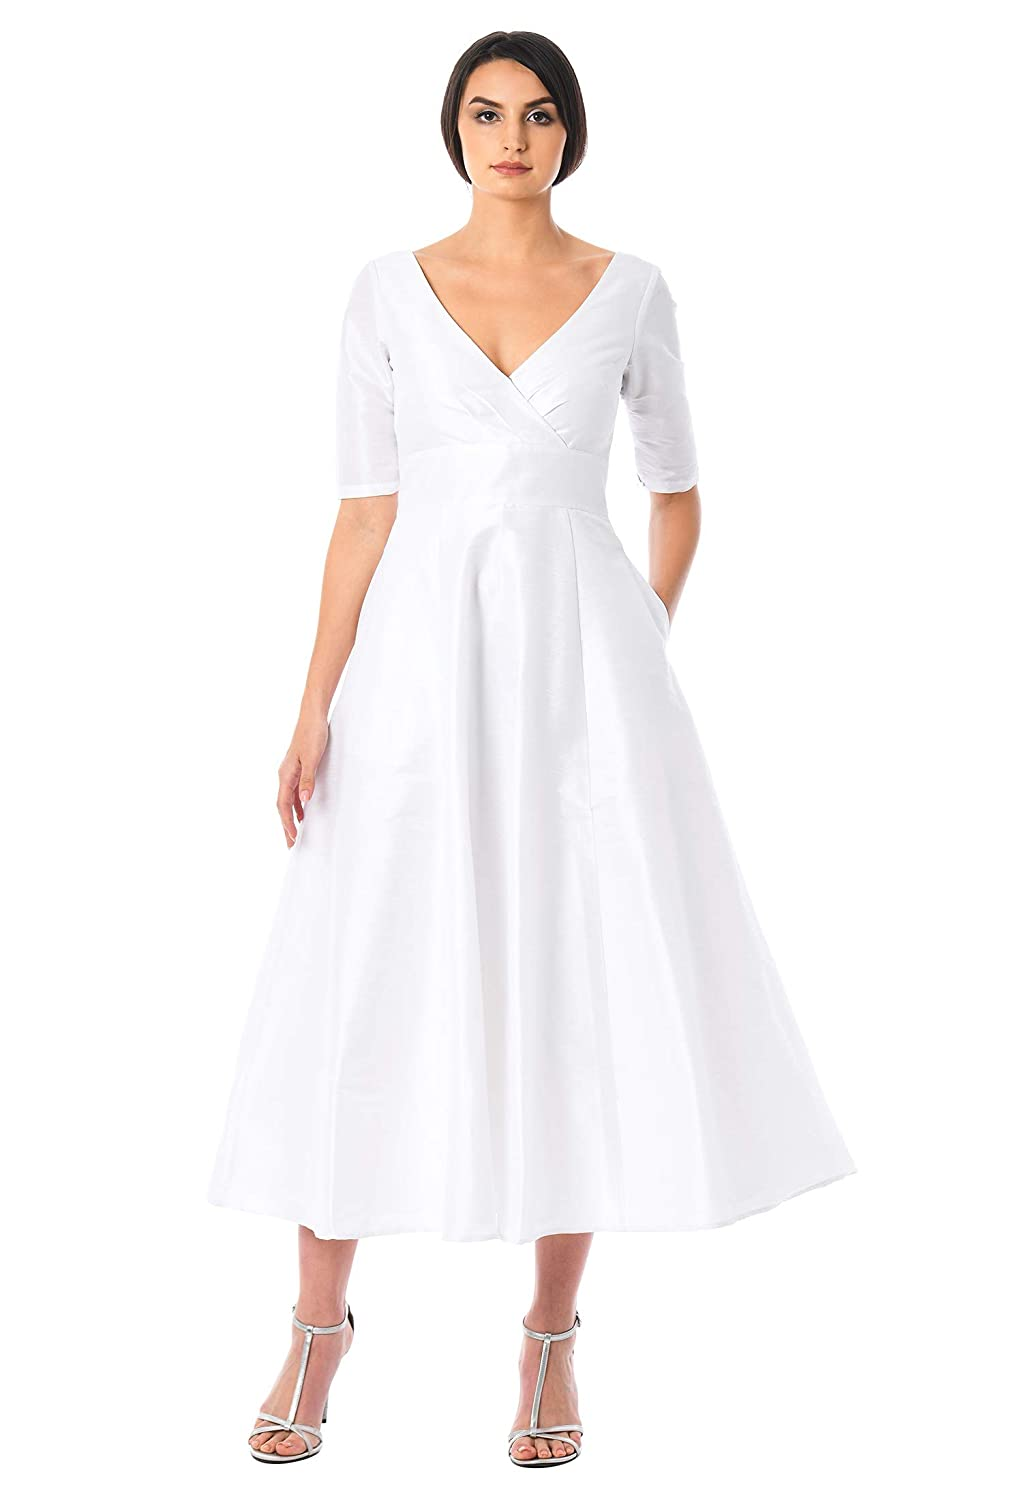 50s Wedding Dress, 1950s Style Wedding Dresses, Rockabilly Weddings eShakti FX Surplice Dupioni Tea Length Dress - Customizable Neckline Sleeve & Length $79.95 AT vintagedancer.com